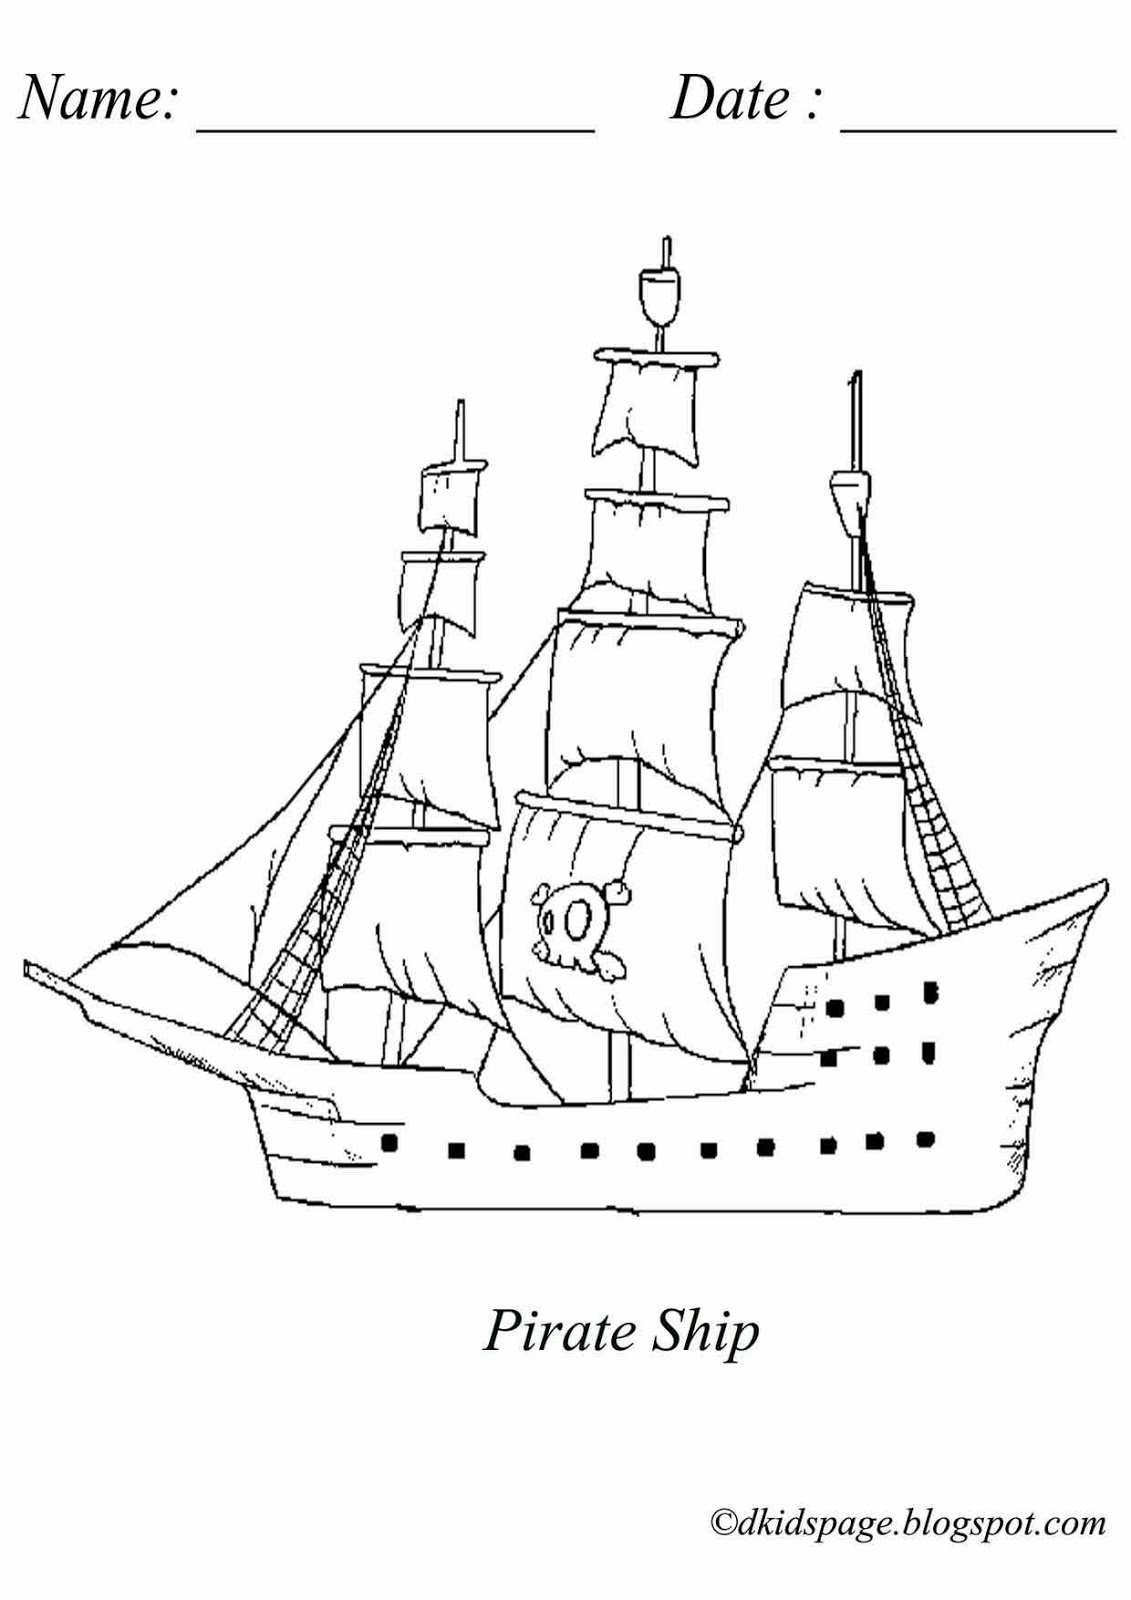 Kids Page Pirate Ship Coloring Page